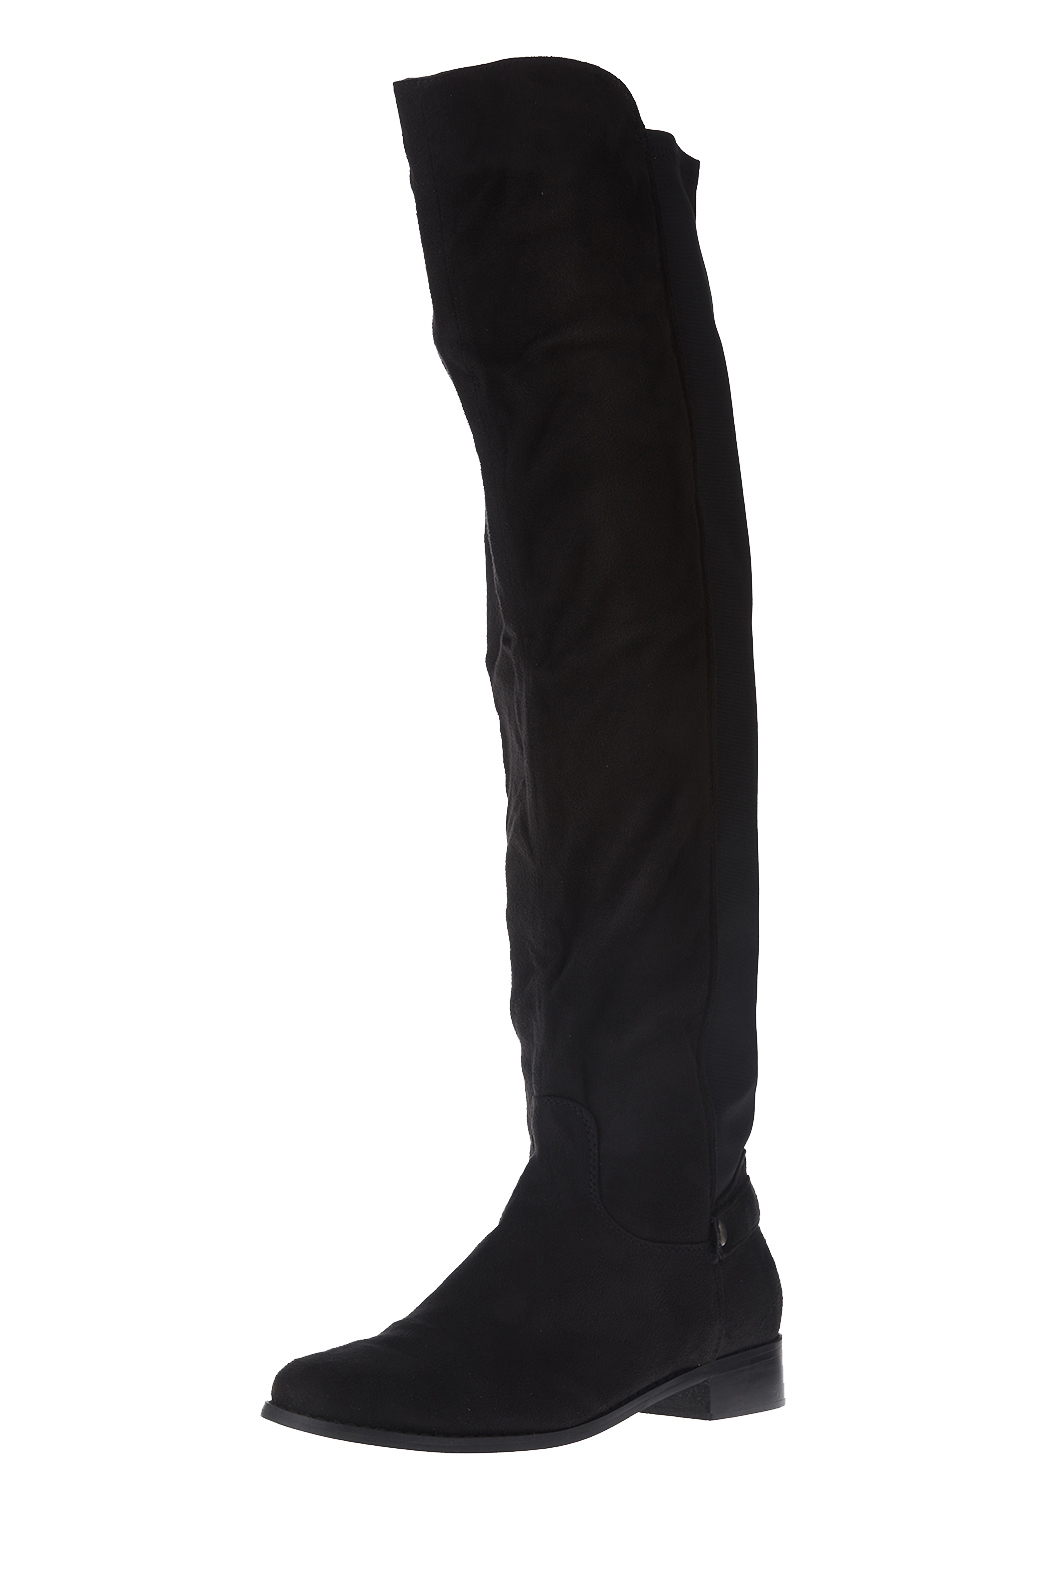 Jacobies Brandi Tall Boots - Back Cropped Image